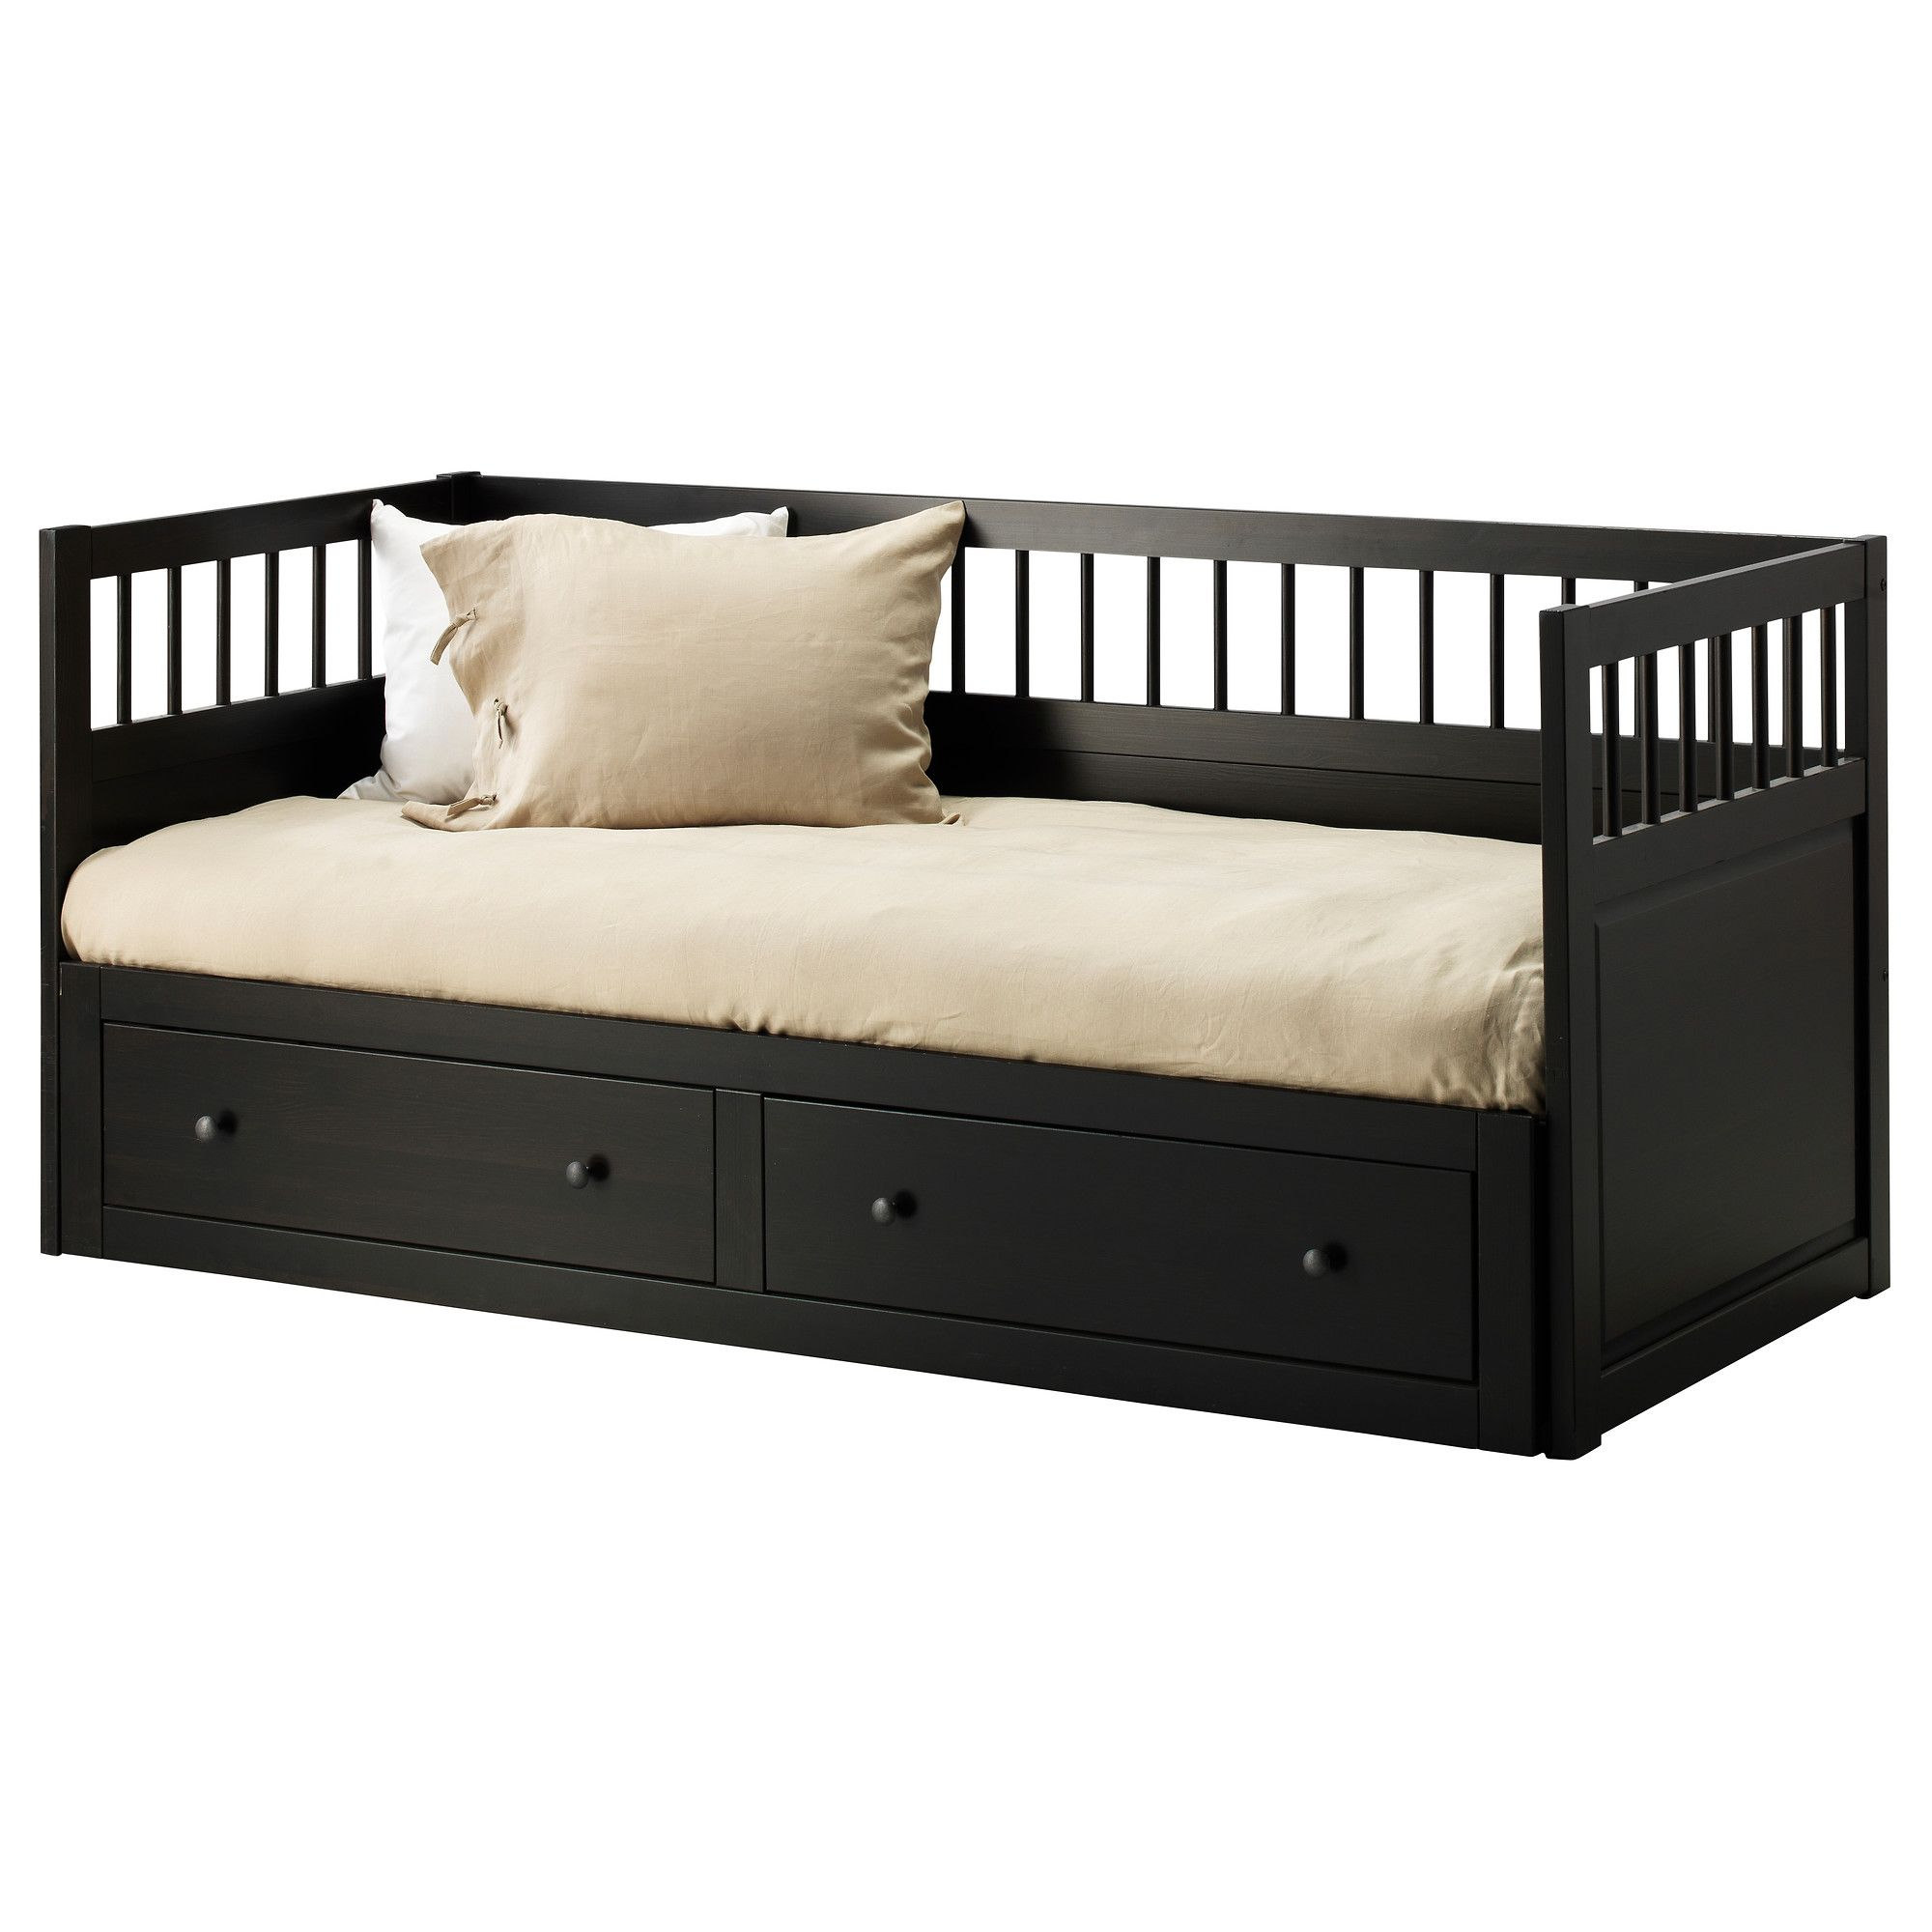 HEMNES Daybed frame with 2 drawers IKEA for when the kiddies are sick and need Mommy and Daddy